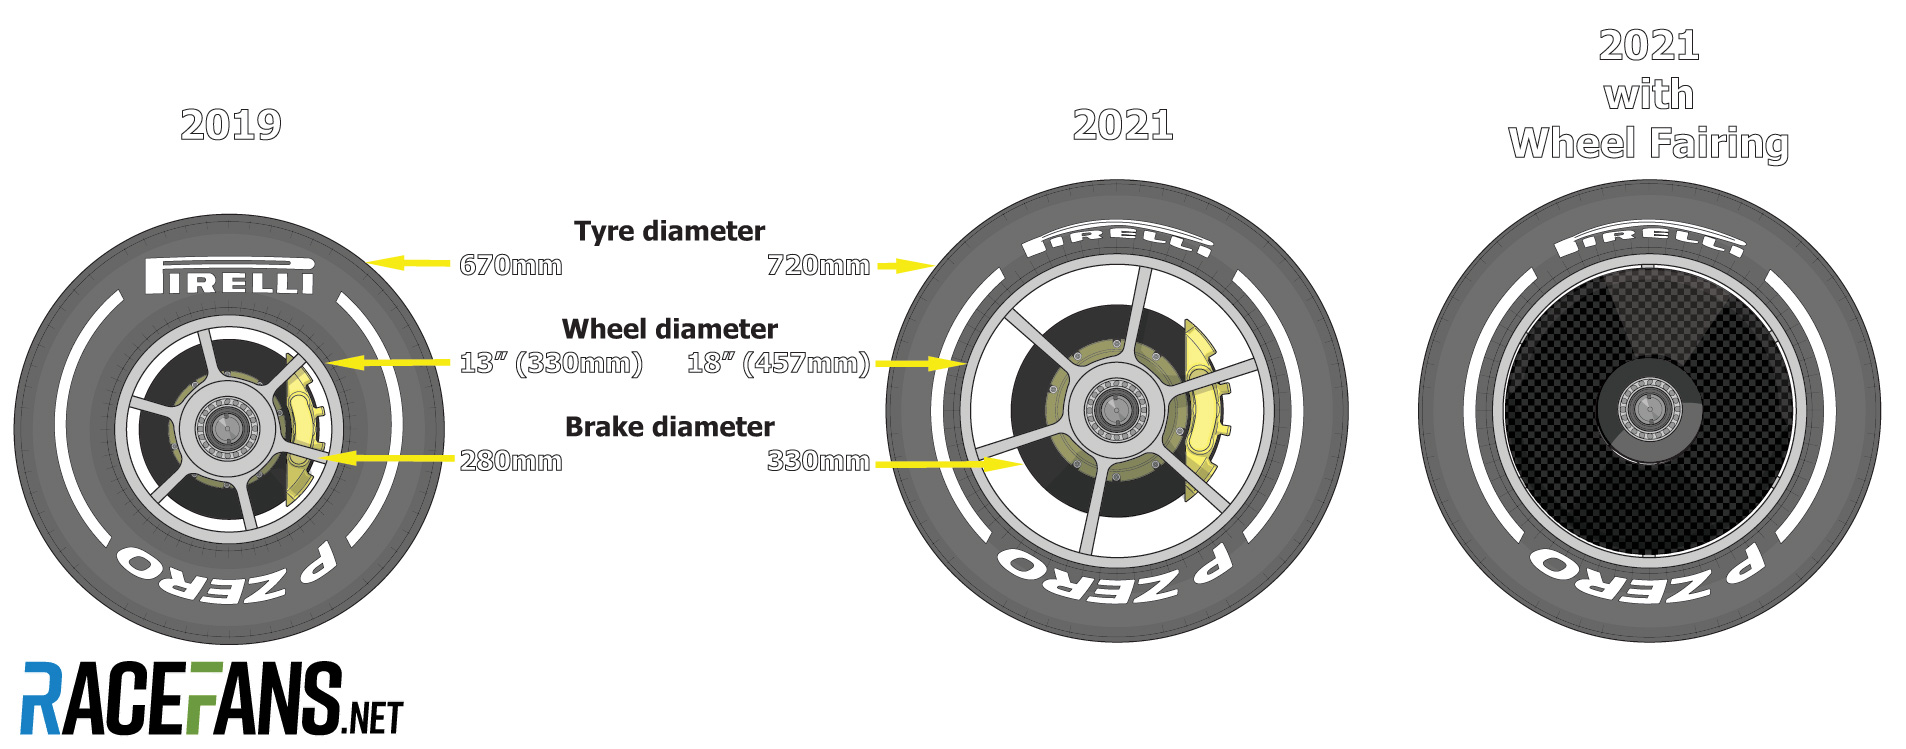 The impact of F1's standard brake system and wheels in 2021 | RaceFans